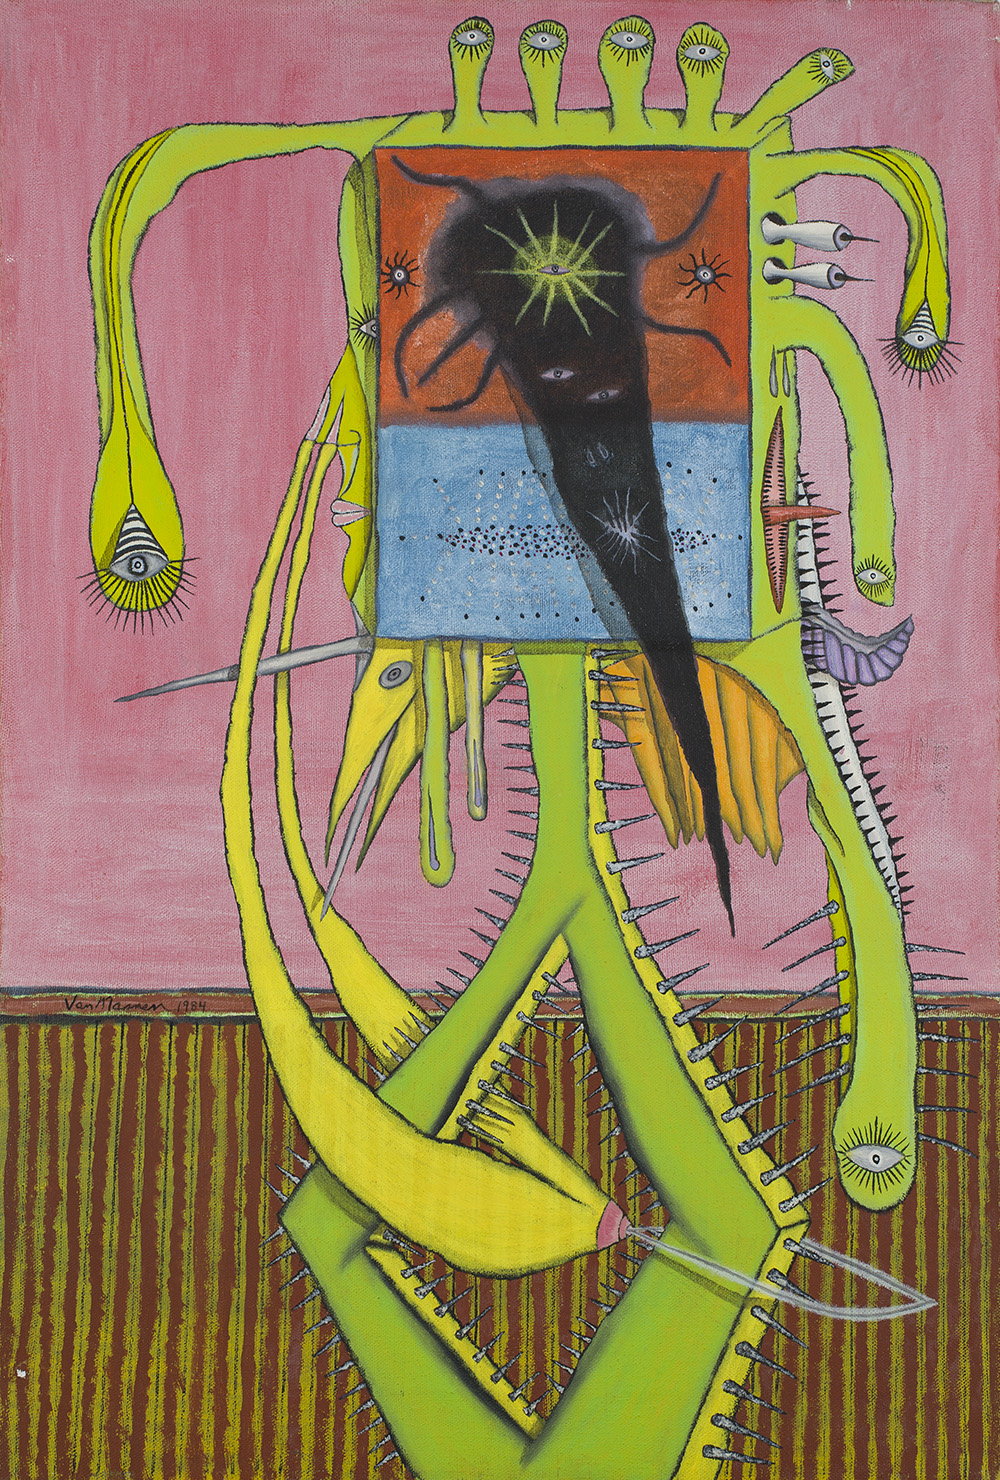 Gregory Van Maanen    Woman  , 5/1/1984 Acrylic on canvas 24 x 16 inches 61 x 40.6 cm GVM 98